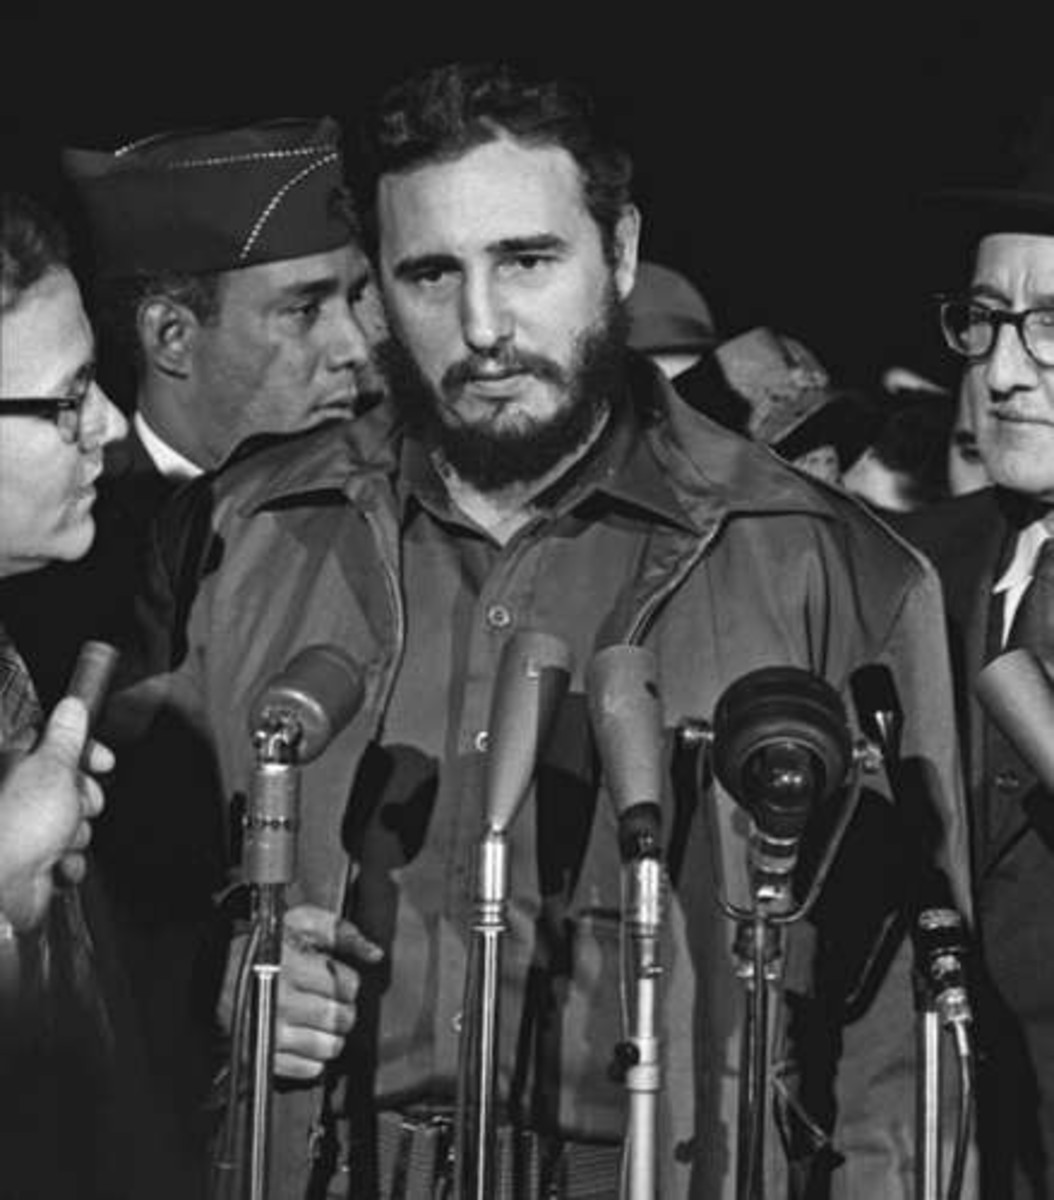 Fidel Castro stands in front of a podium.